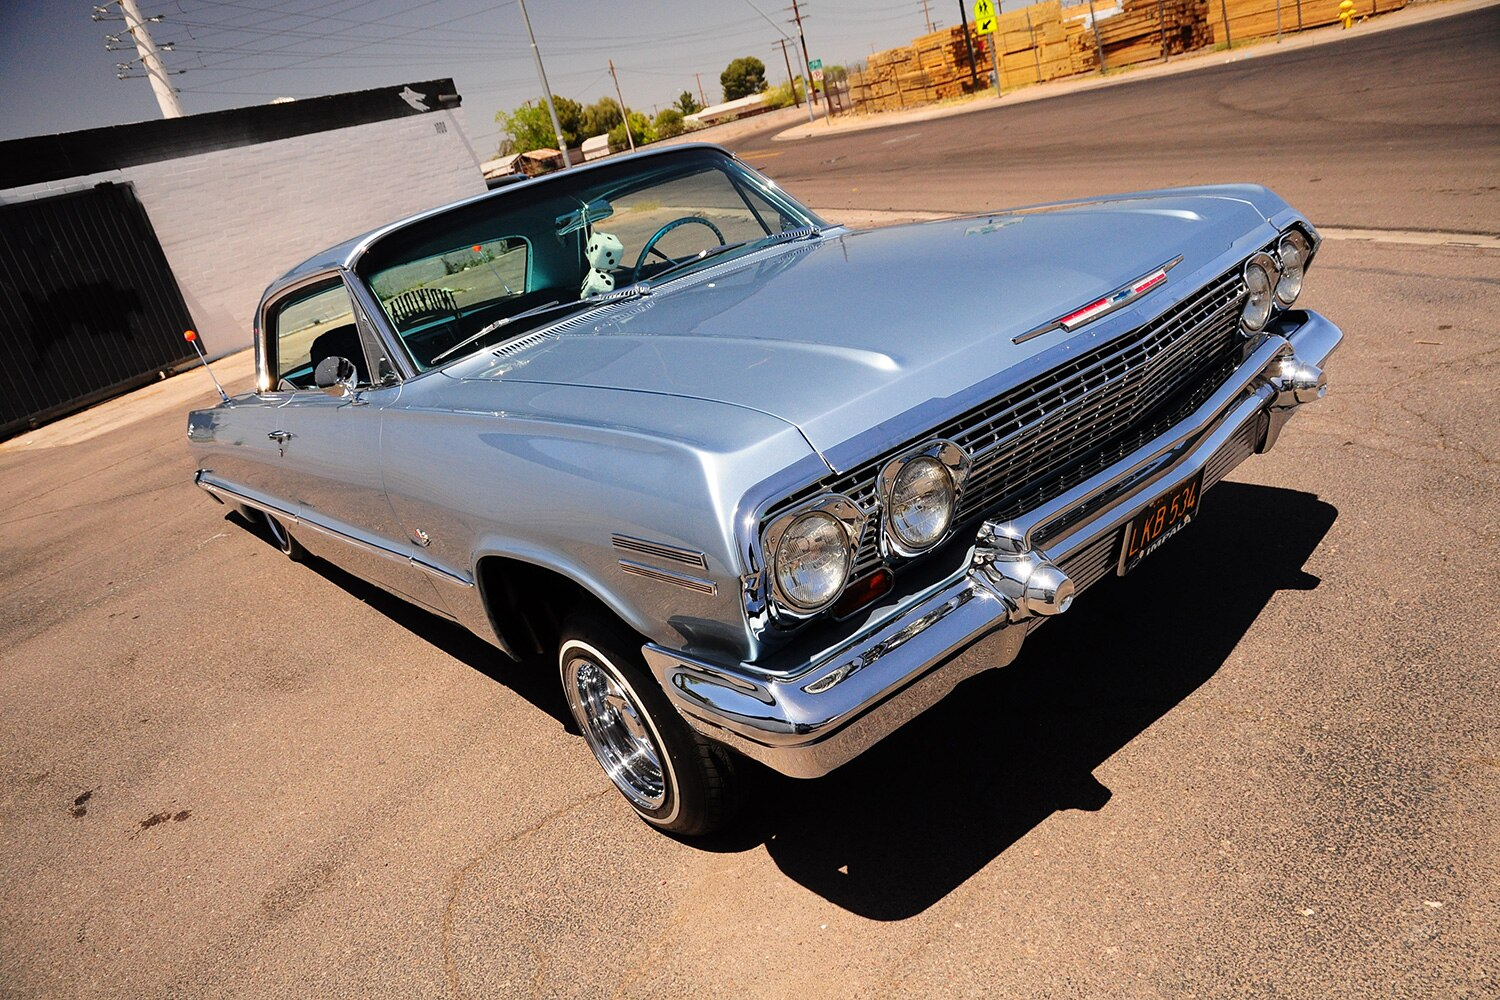 1963-chevrolet-impala-front-right-side-view-promo